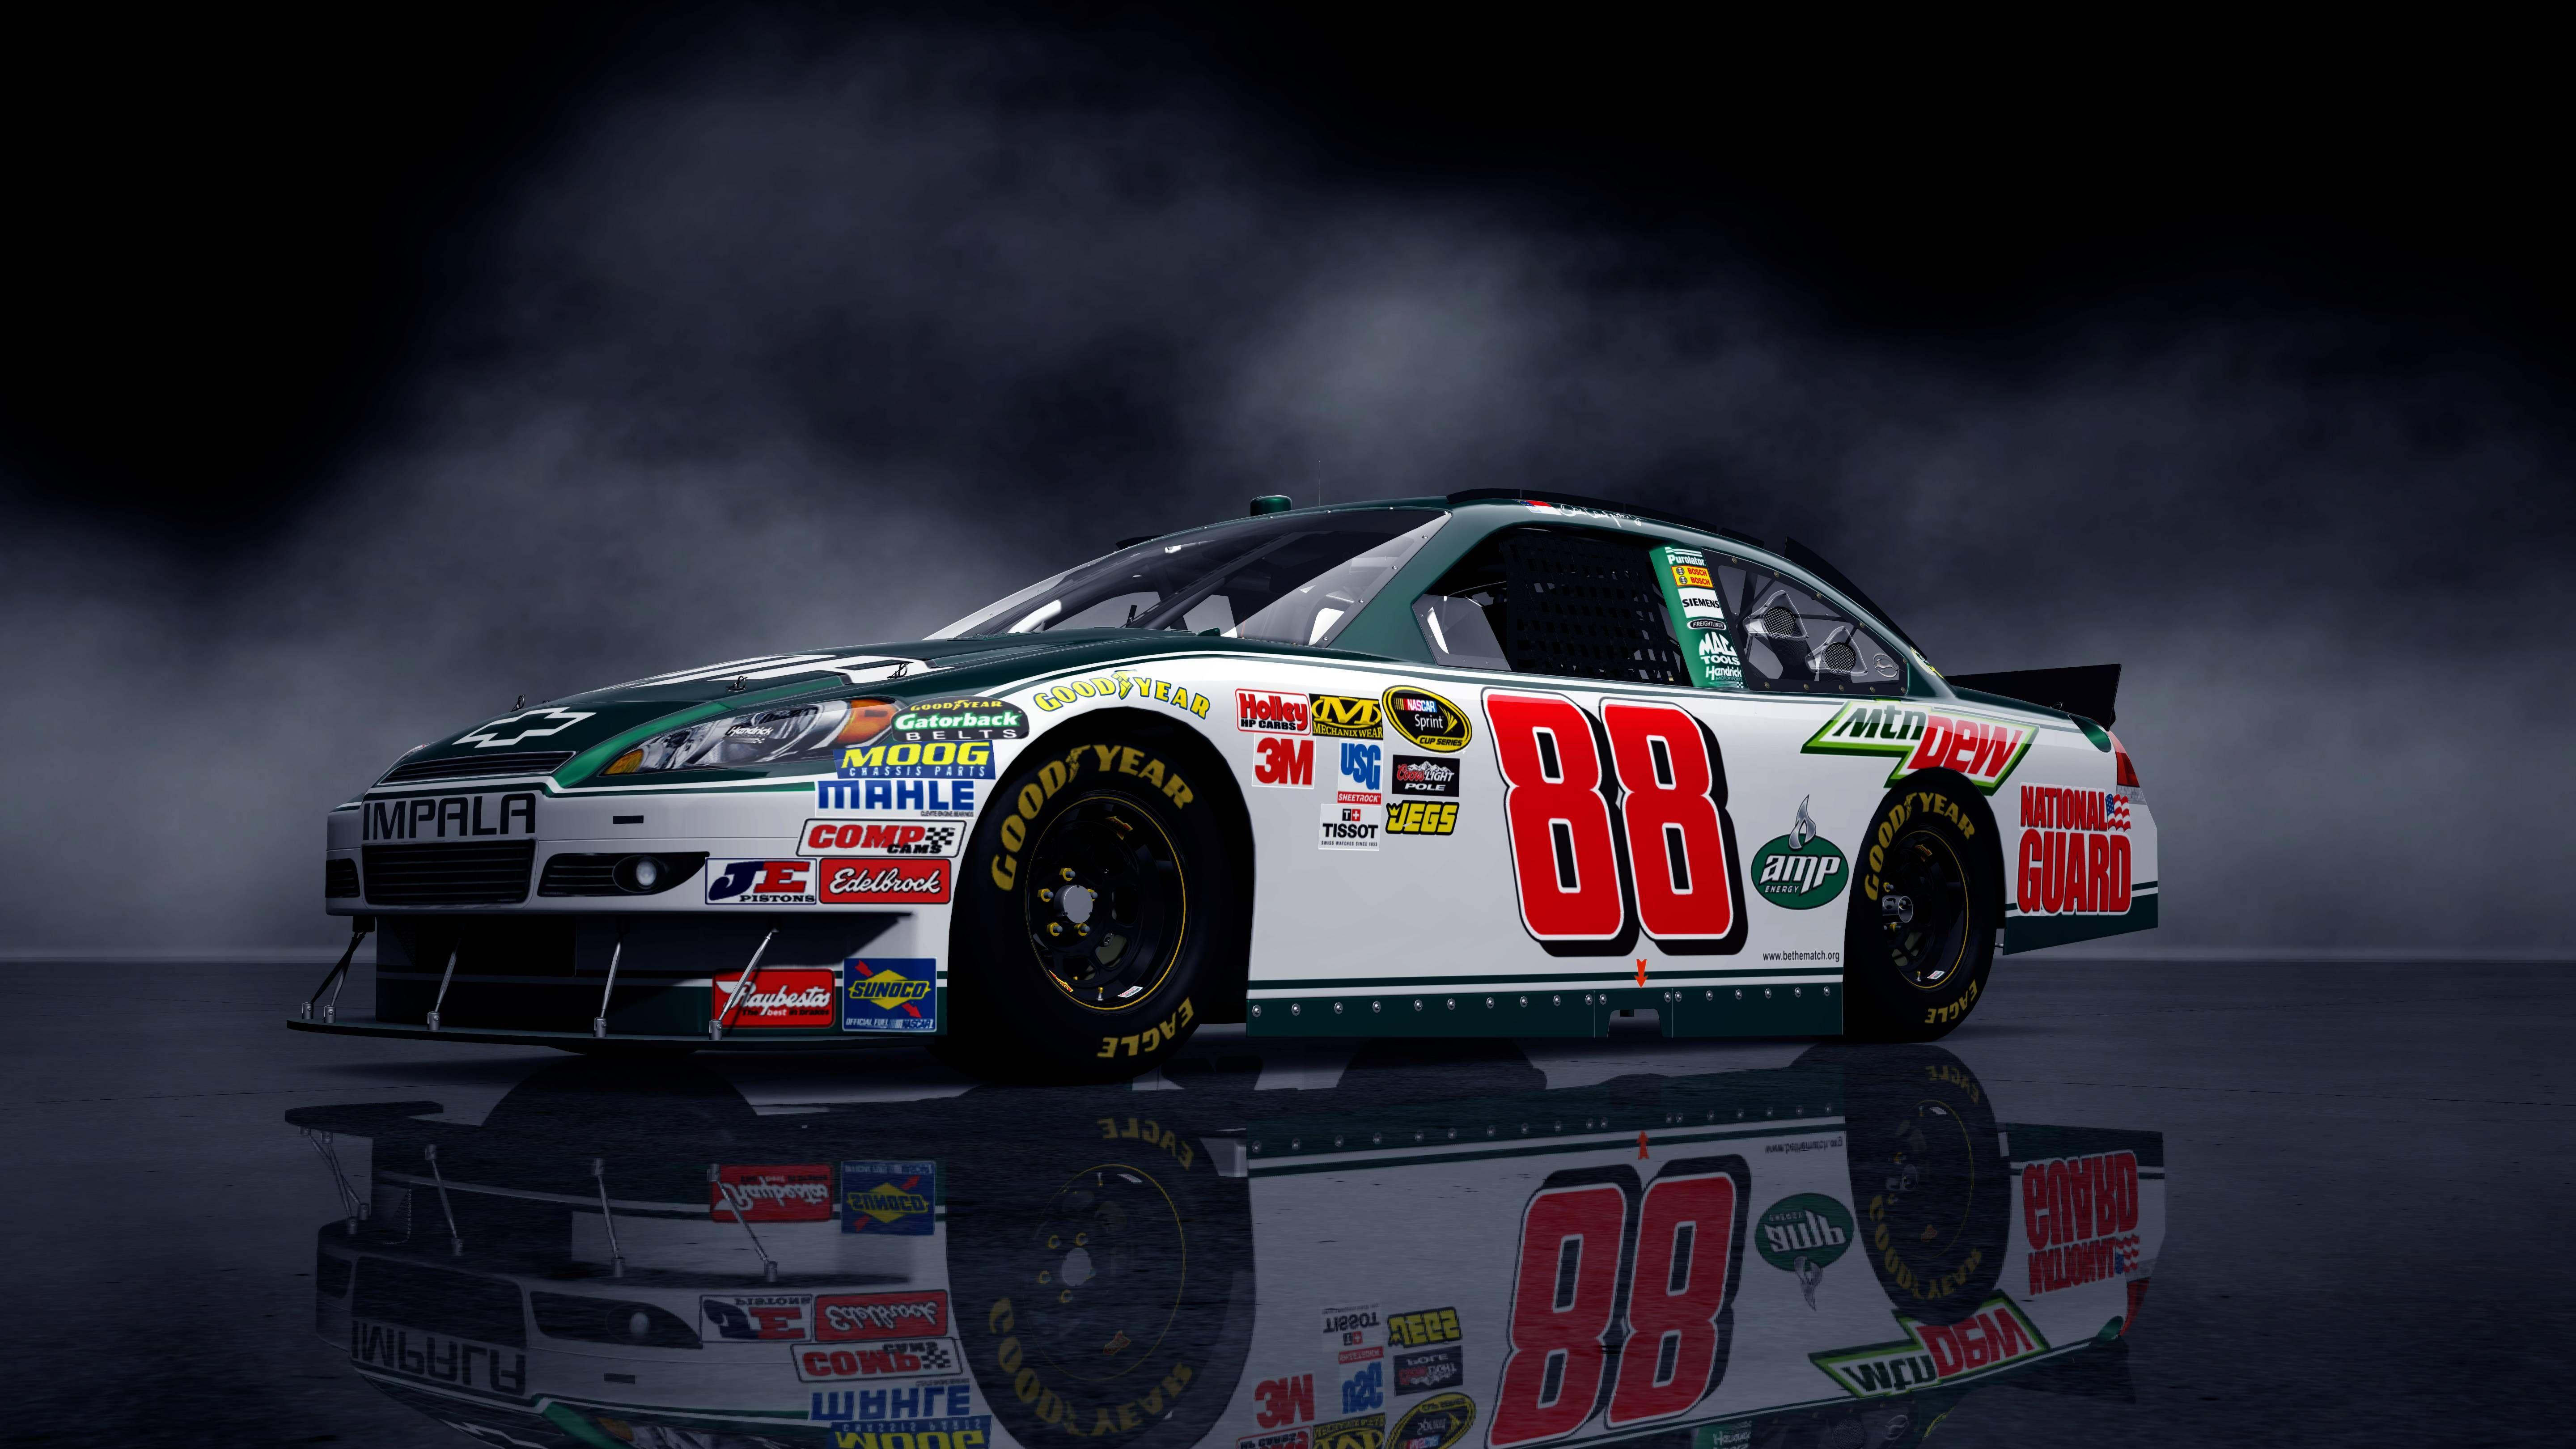 Free Dale Earnhardt Jr Wallpapers Wallpaper Cave Nascar Photos Nascar Dale Earnhardt Jr